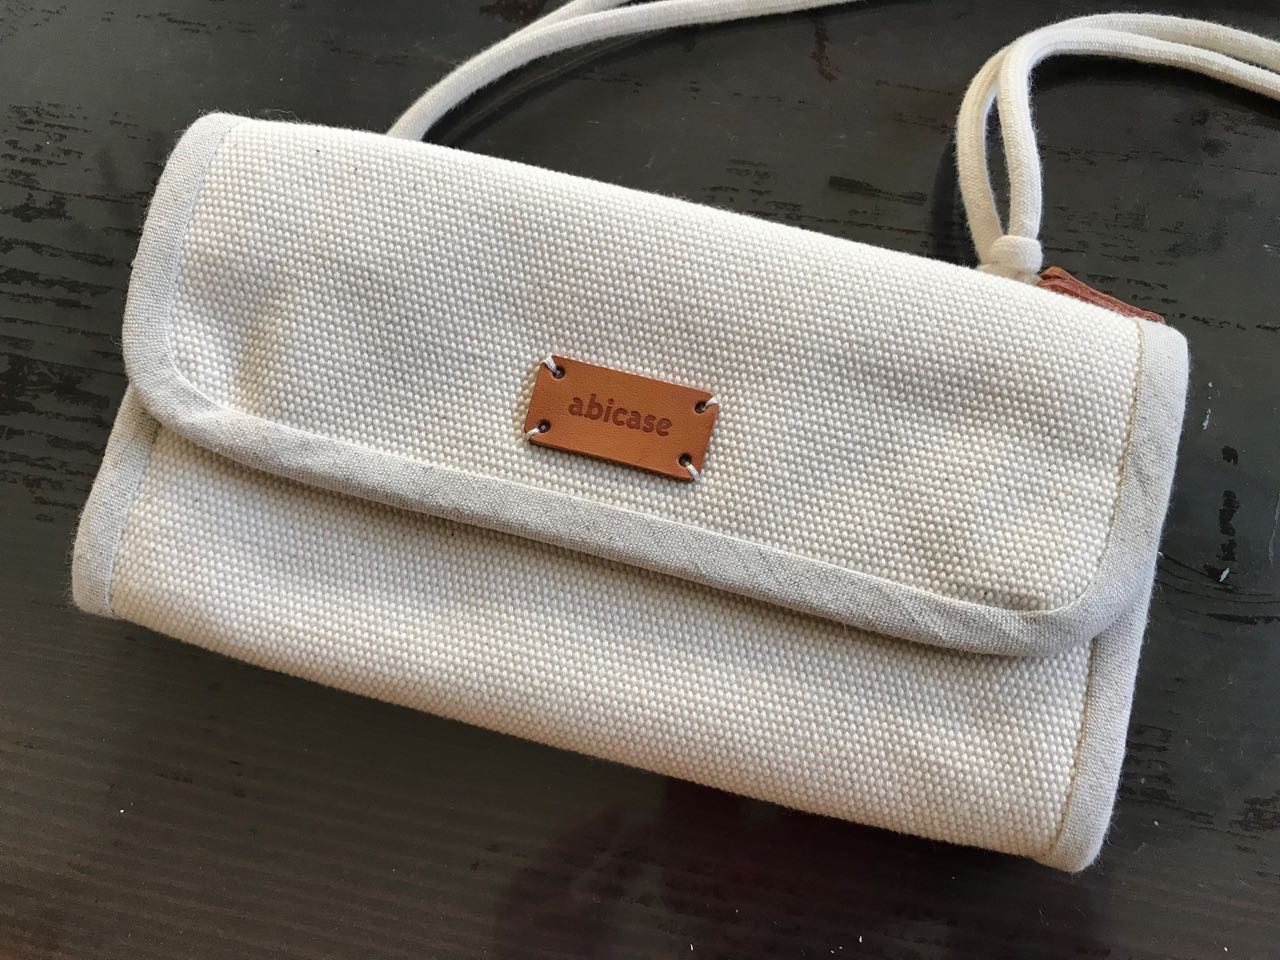 abicaseの1点物財布【abicaseDUCK Wallet?Bag?】を買っちゃいました!